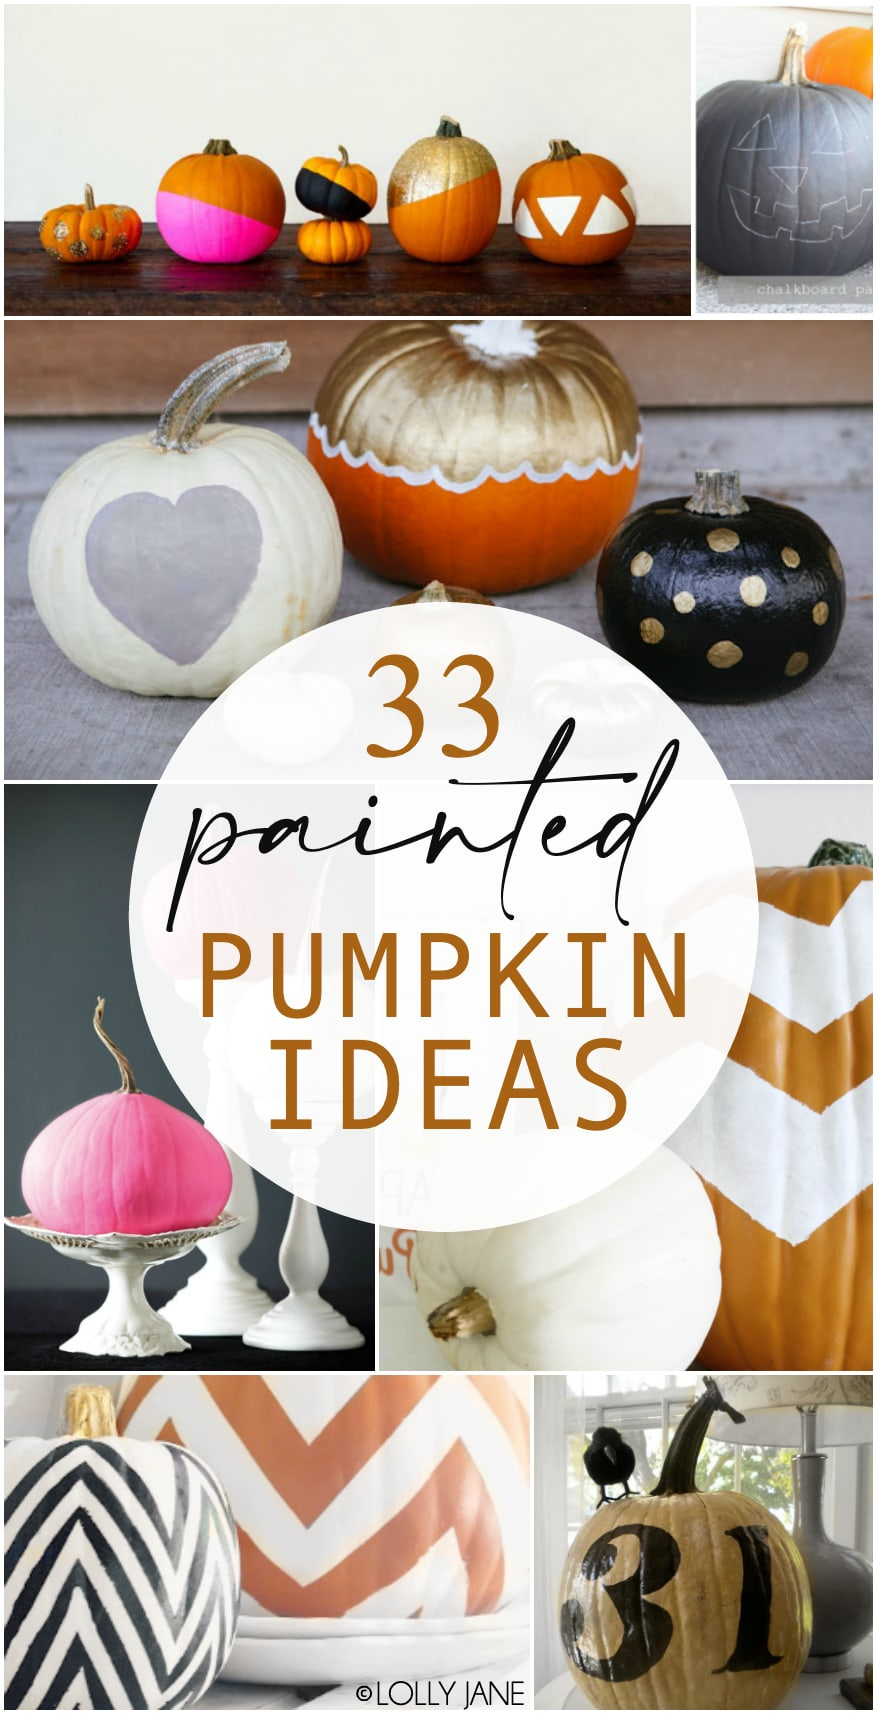 33 Painted Pumpkin Ideas... from shapes to dots and stripes to solids, check out the ultimate collection of painted pumpkins! #fall #pumpkins #diypumpkins #paintedpumpkins #pumpkindiy #falldiy #fallhomedecor